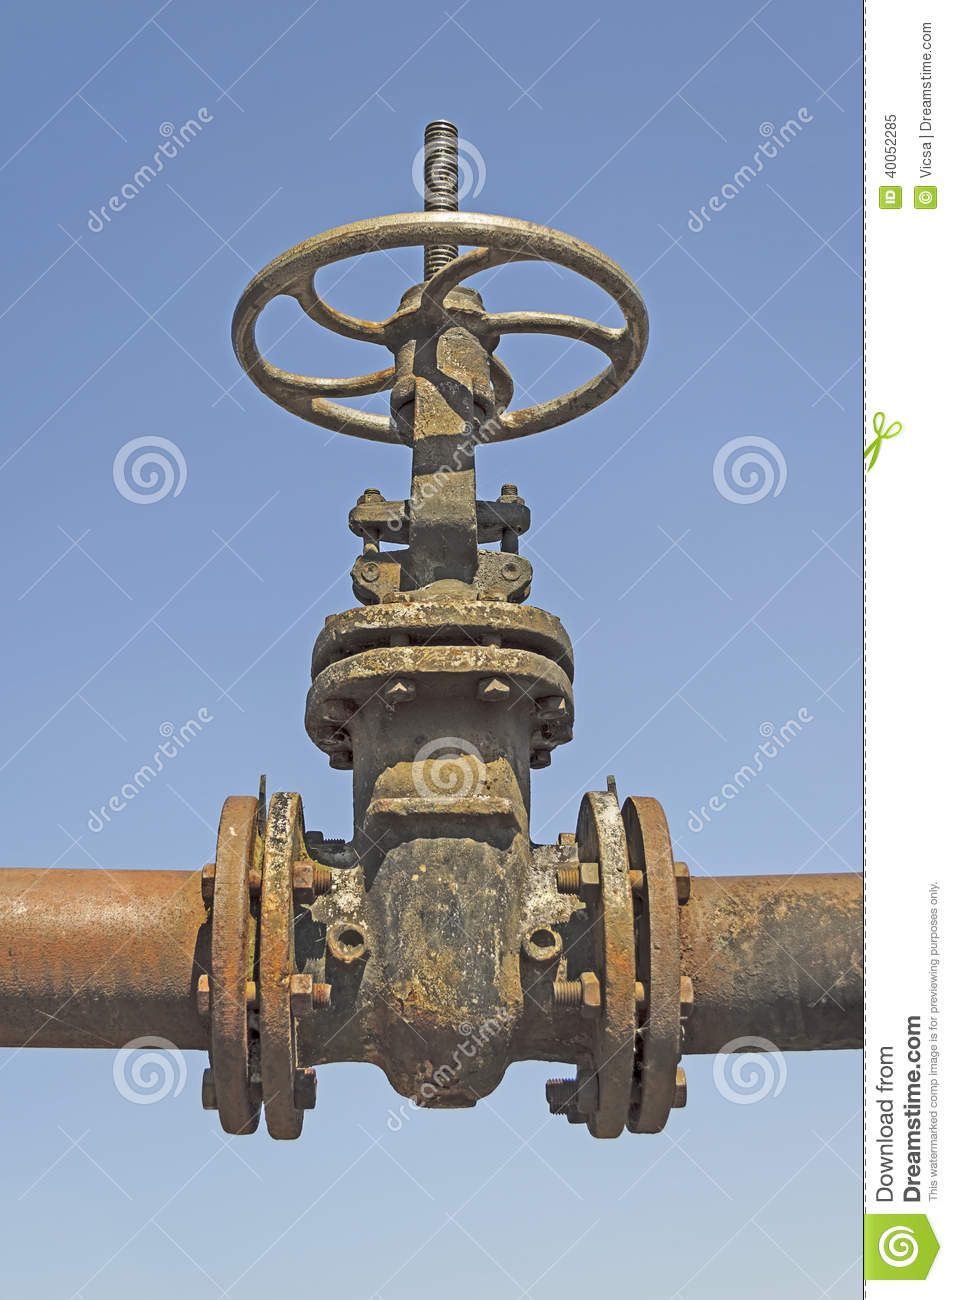 old pipe with large valve stock image  image of conduit